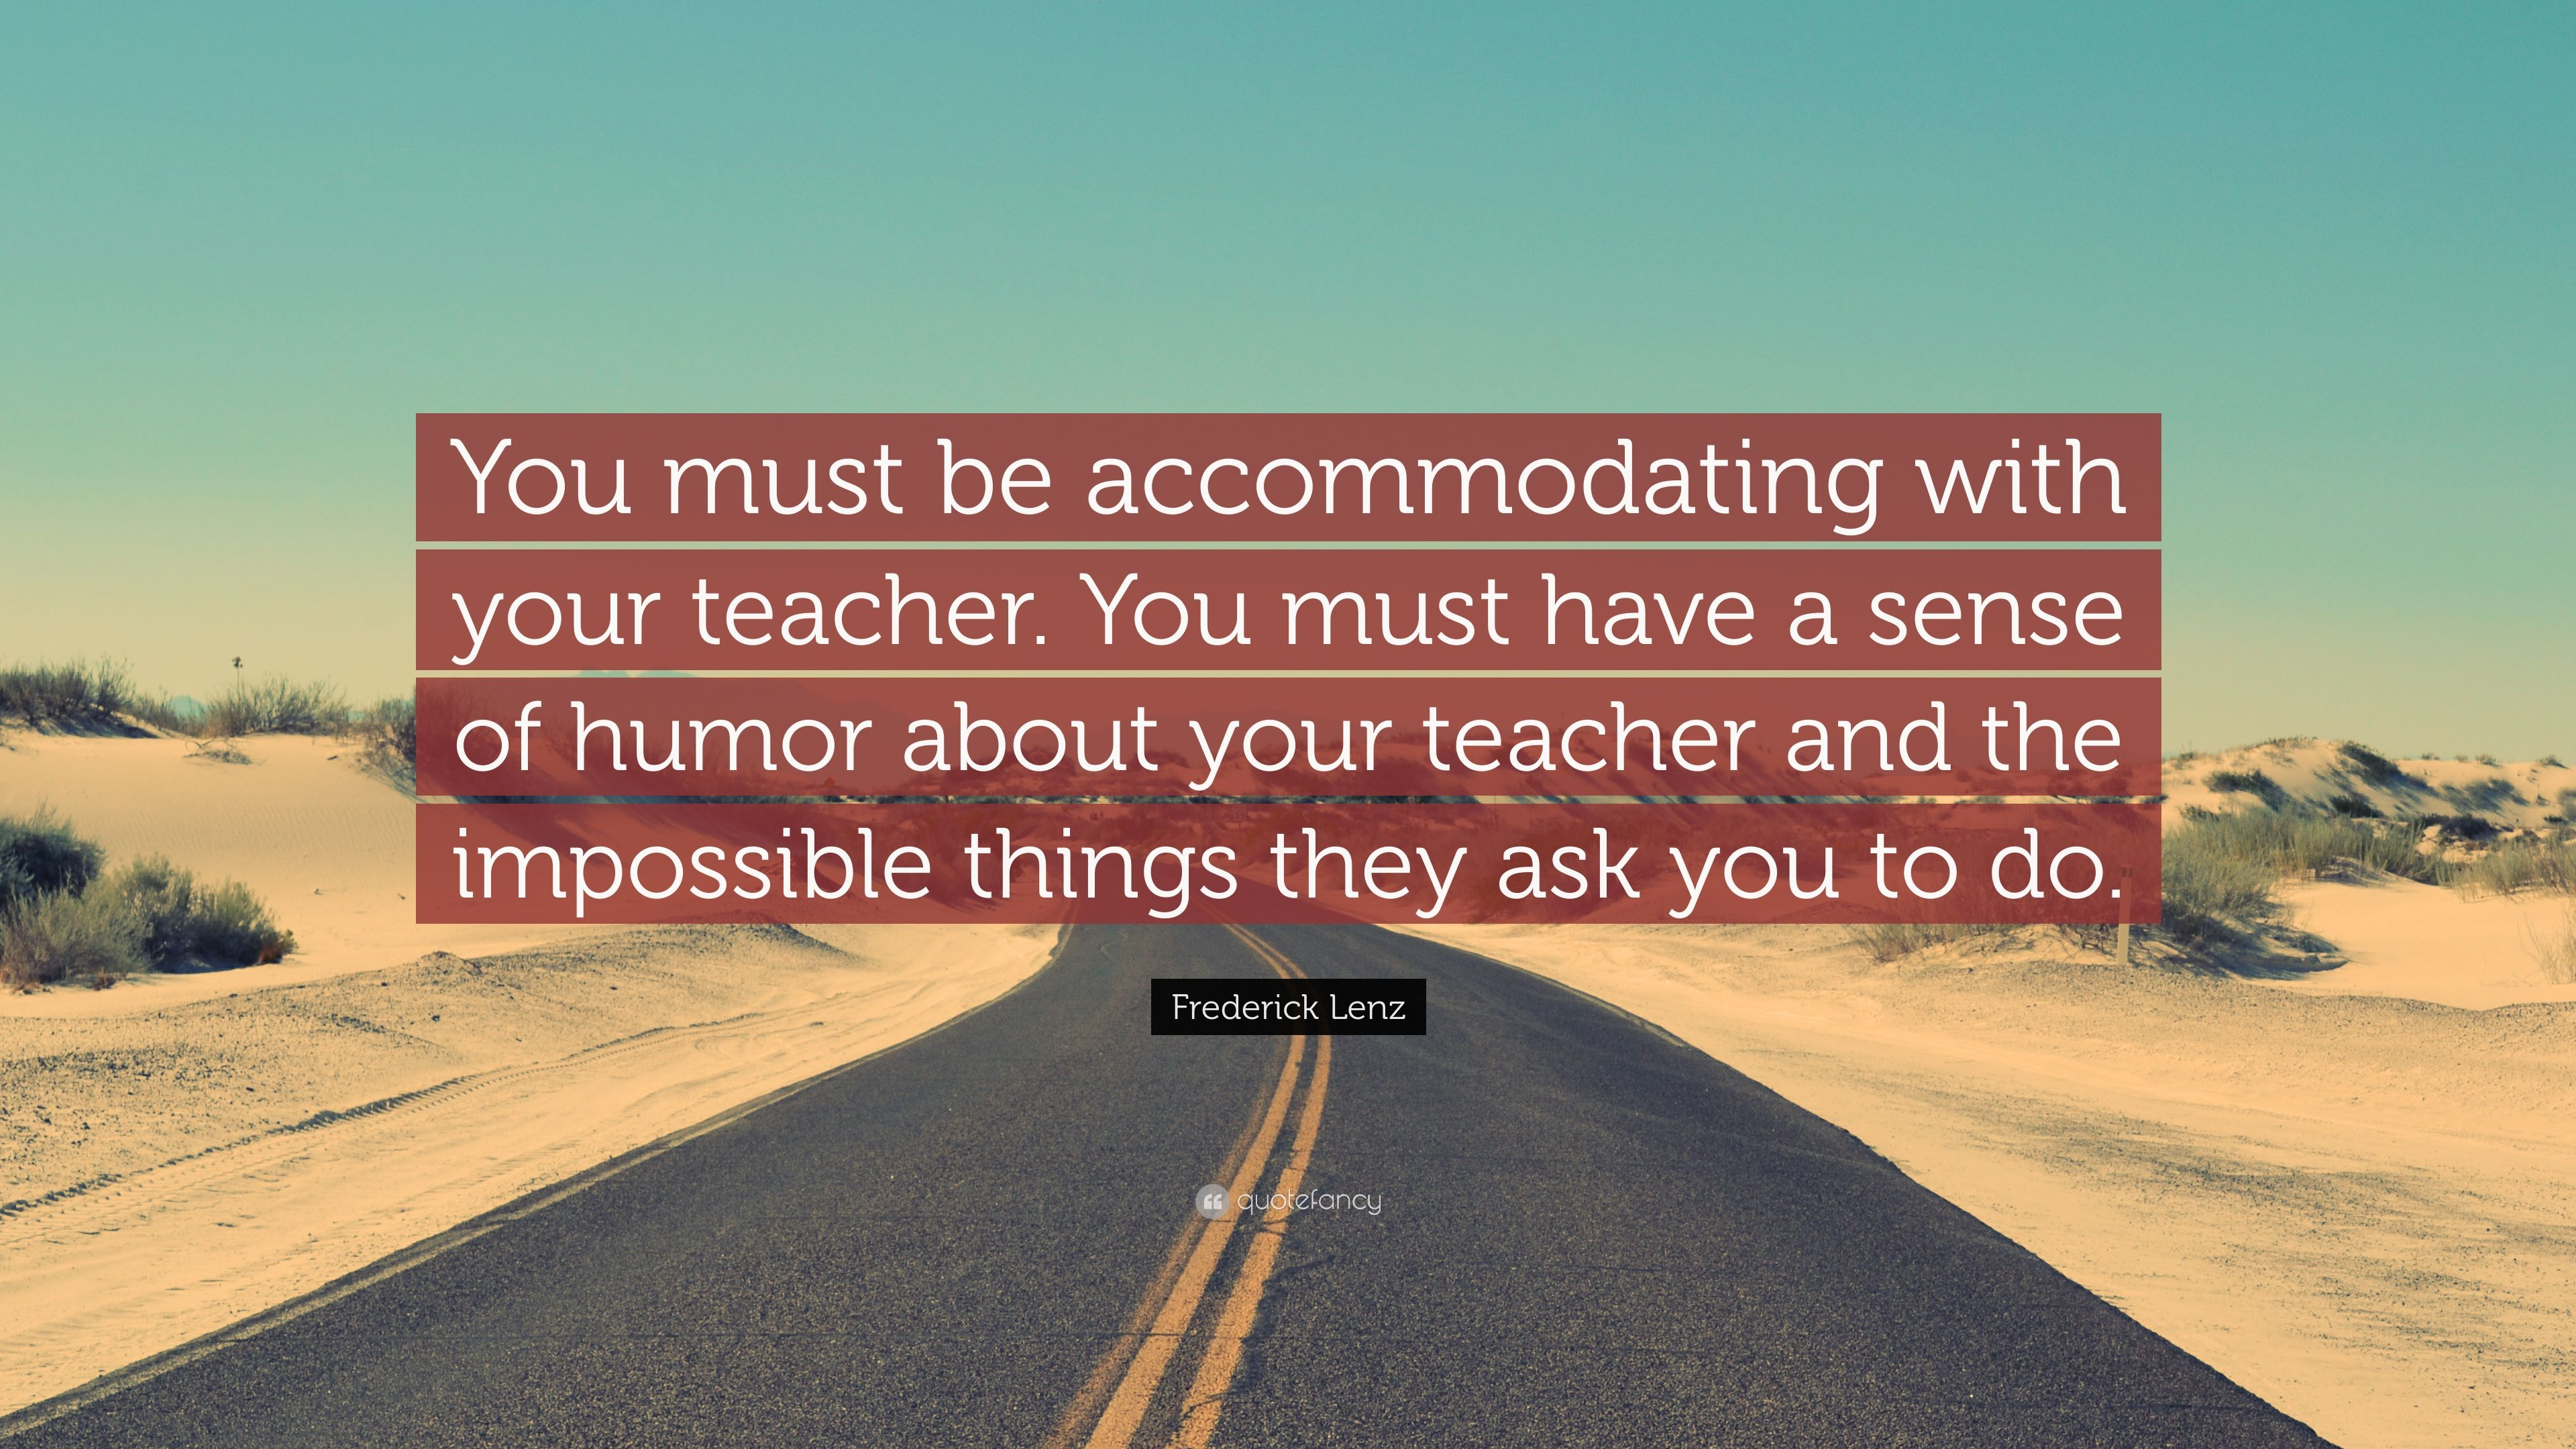 accommodating with